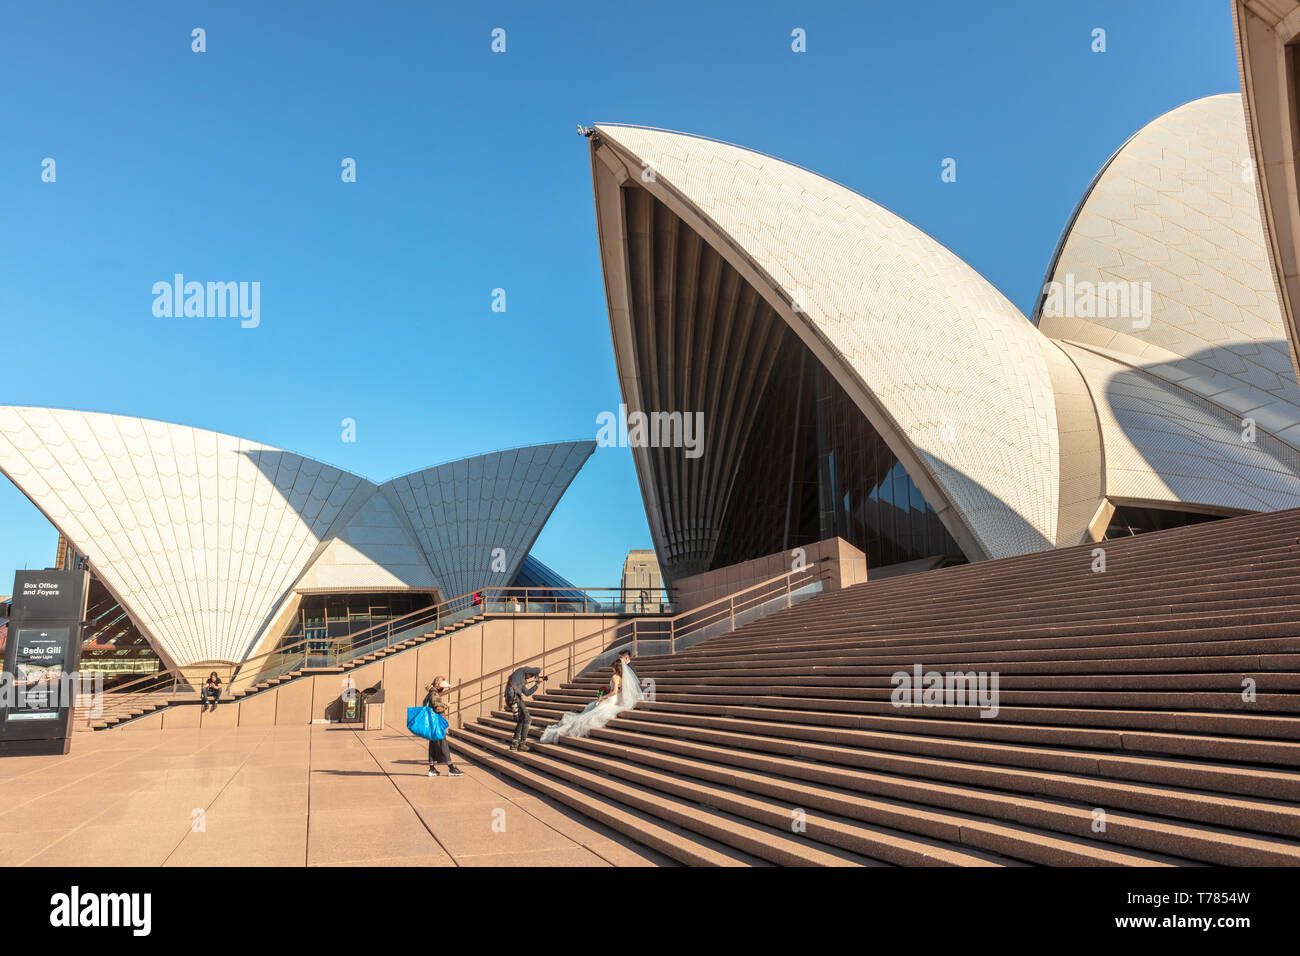 Centurys Stock Photos & Centurys Stock Images - Alamy